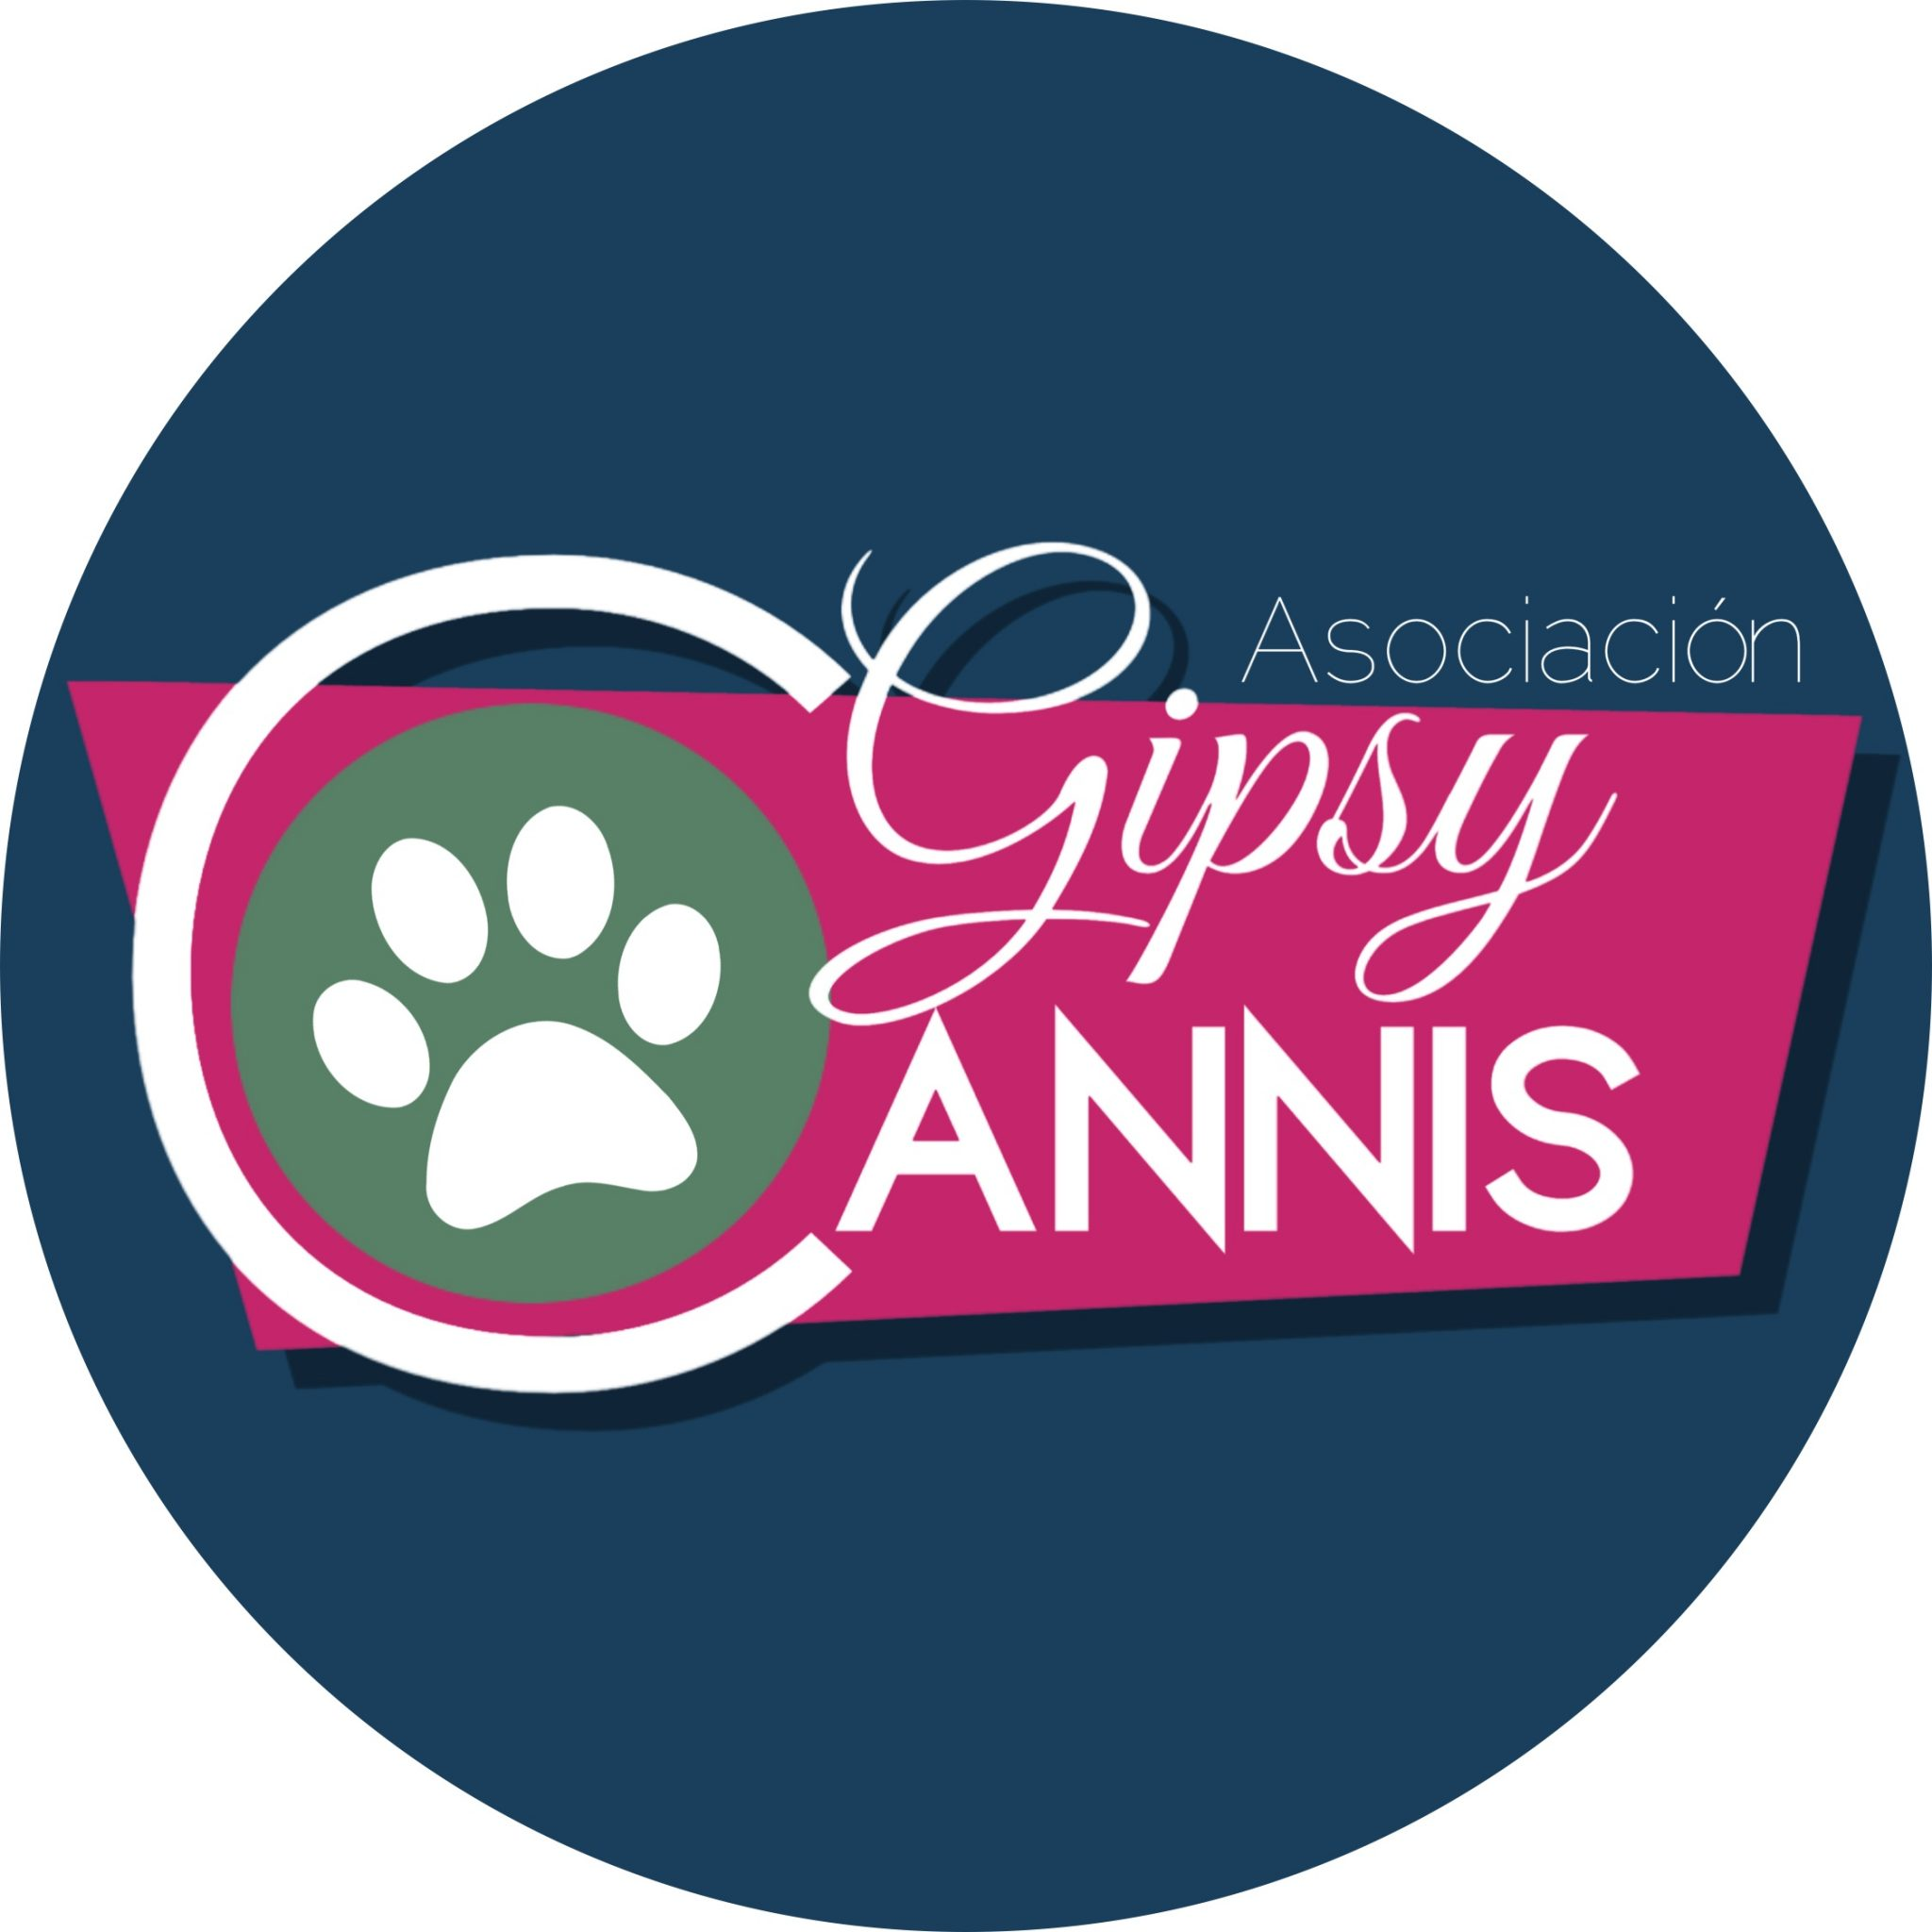 Gipsy Cannis